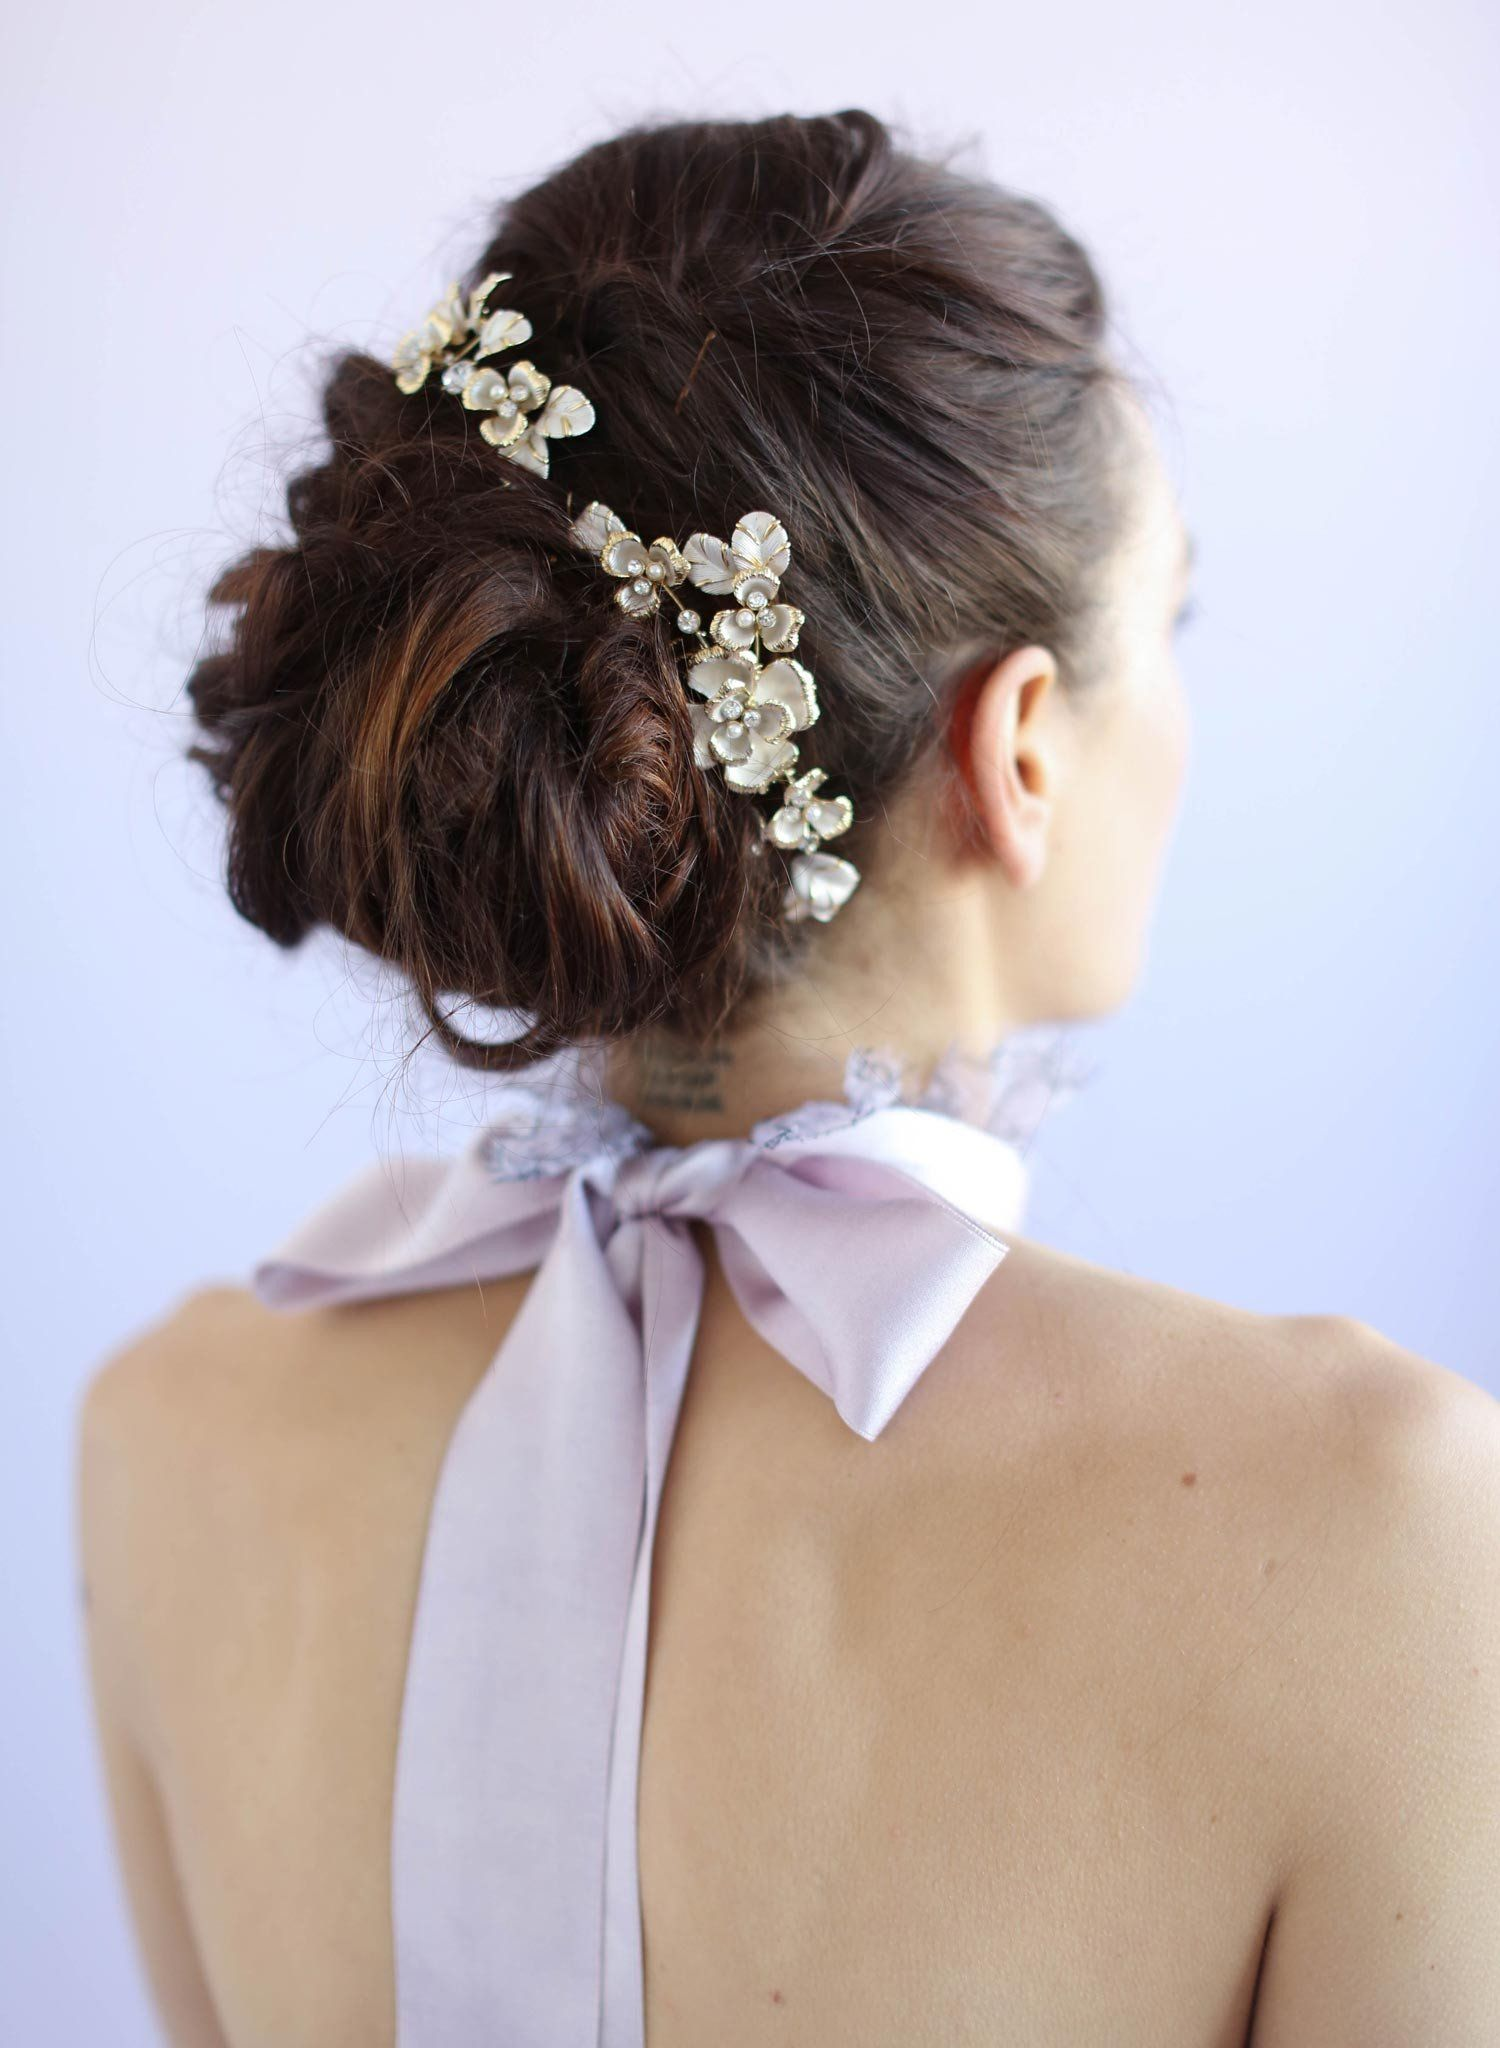 gilded floral comb pair - style #618 | montreal marriage